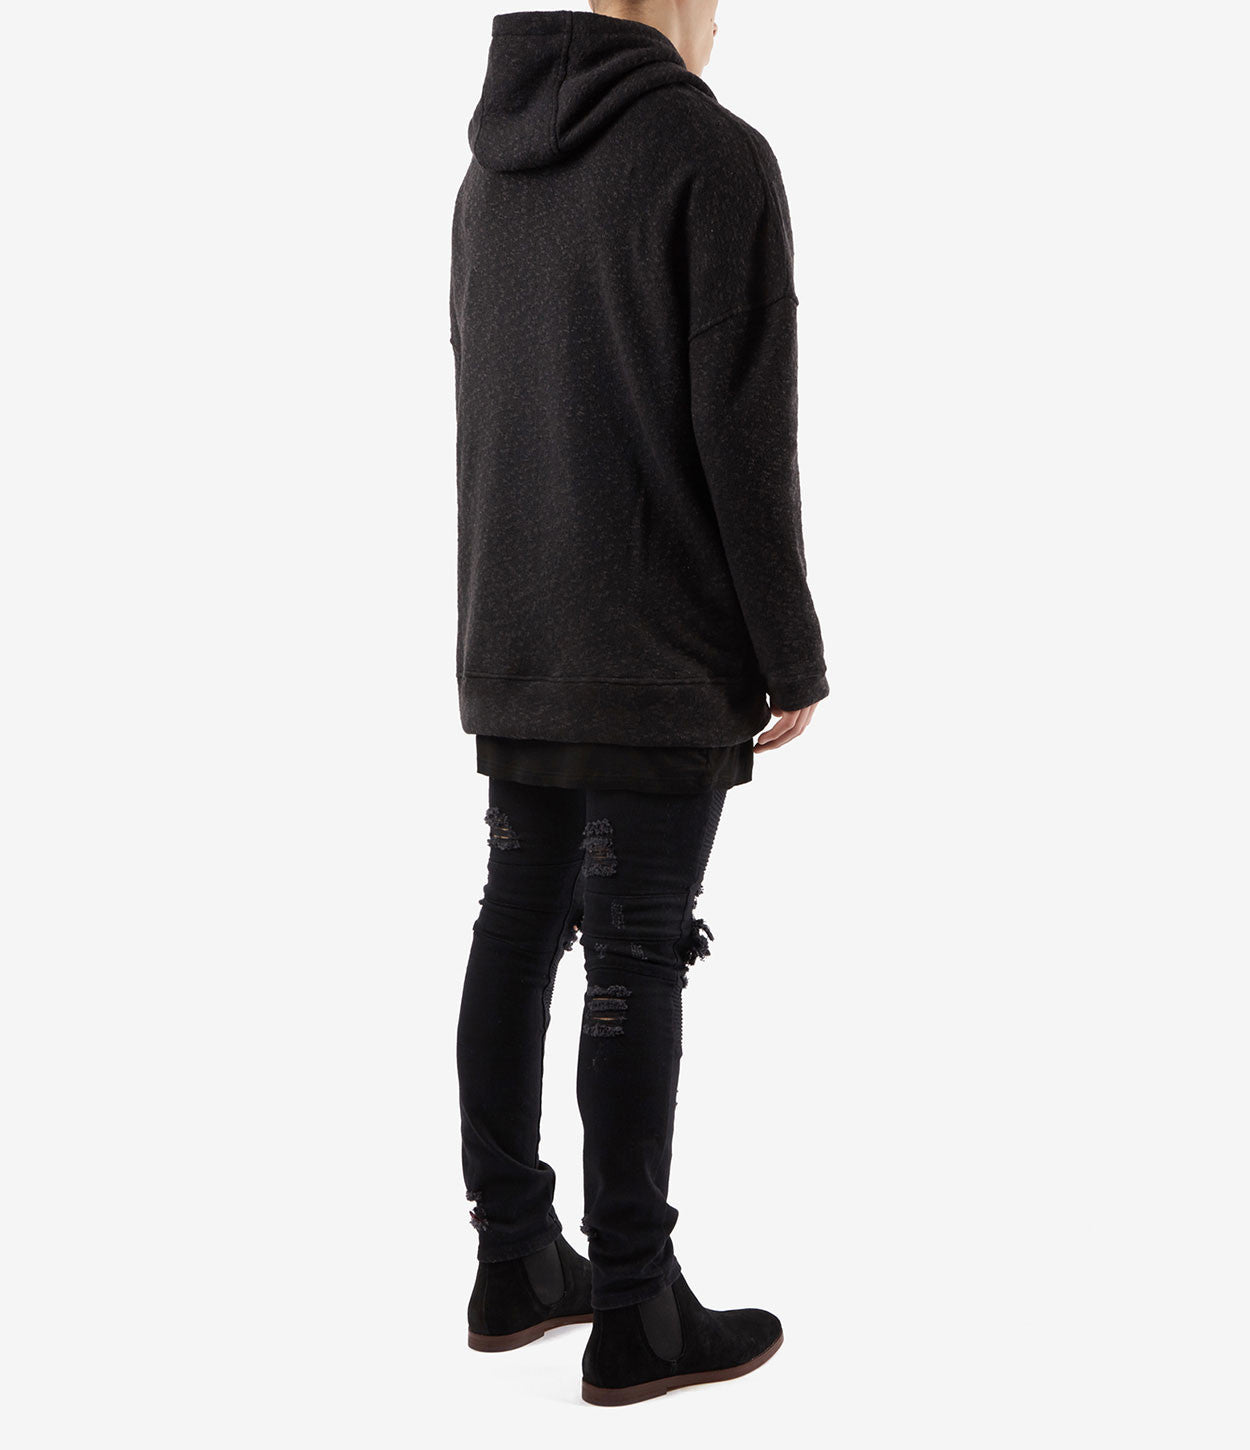 HD378 Oversized Knit Hoody - Charcoal/Black - underated london - underatedco - 4